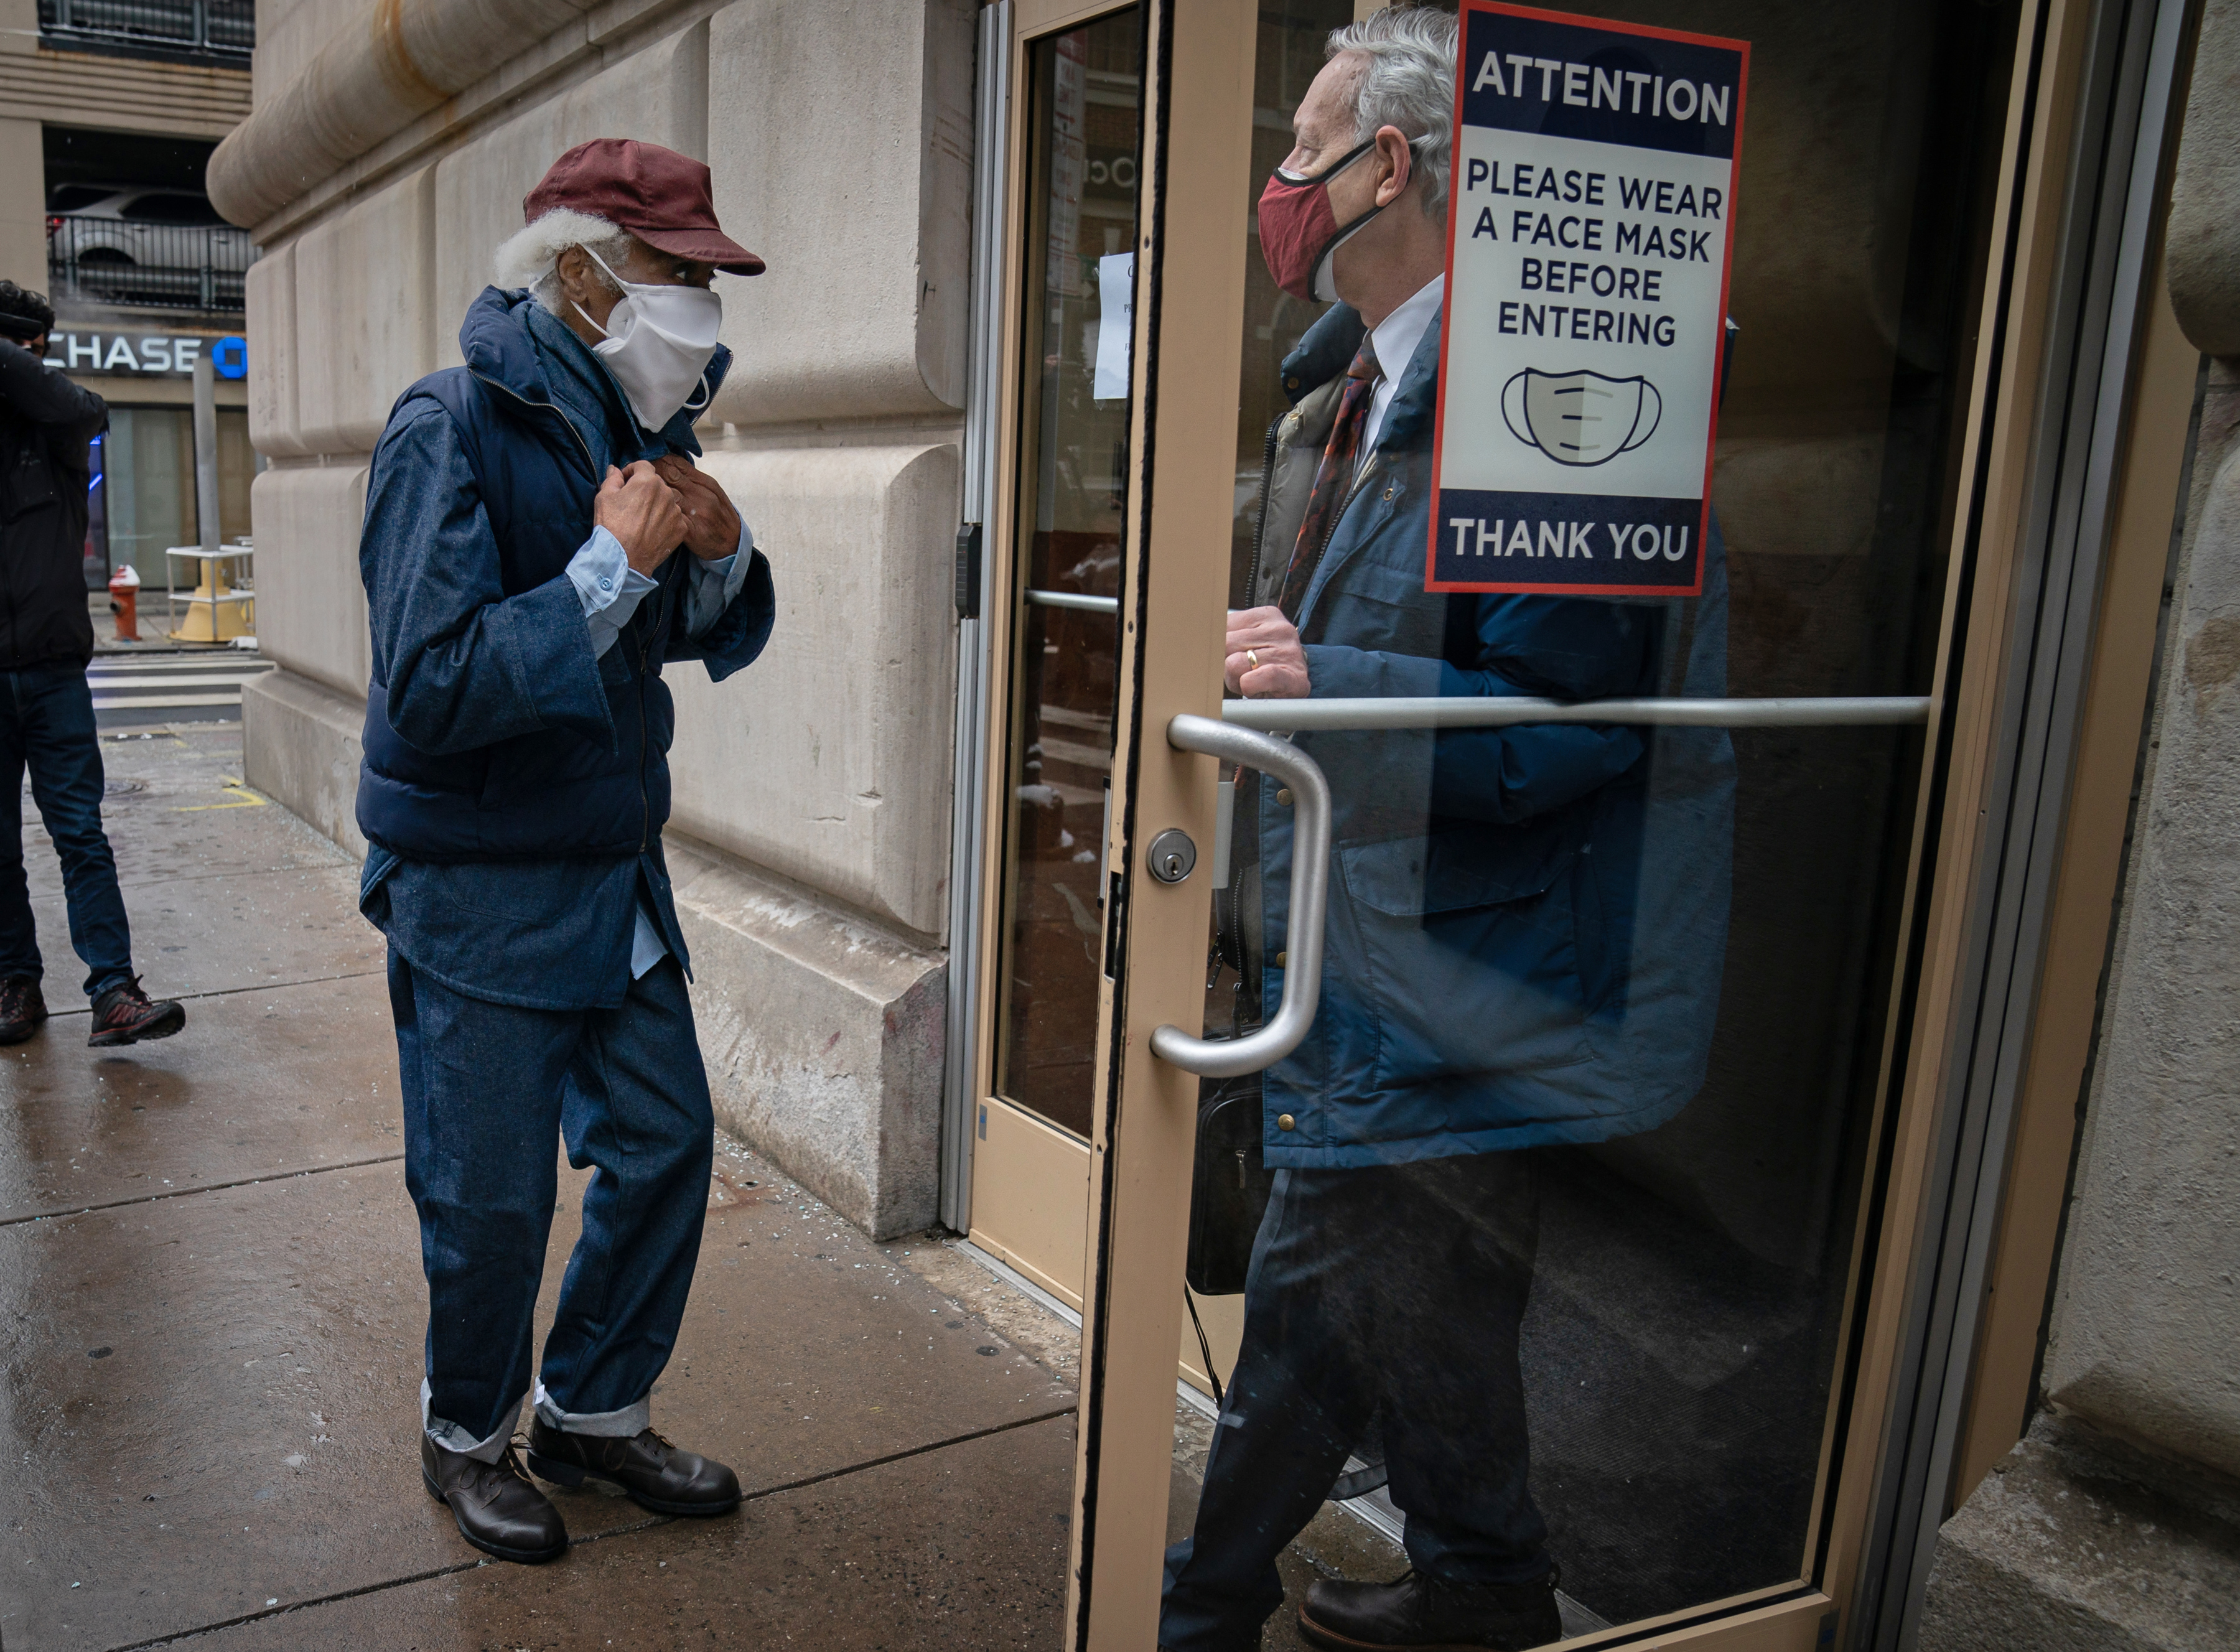 Joe Ligon, left, and his lawyer Bradley Bridge, right, arrive at Bridge's office in Center City, after Ligon was released from prison.